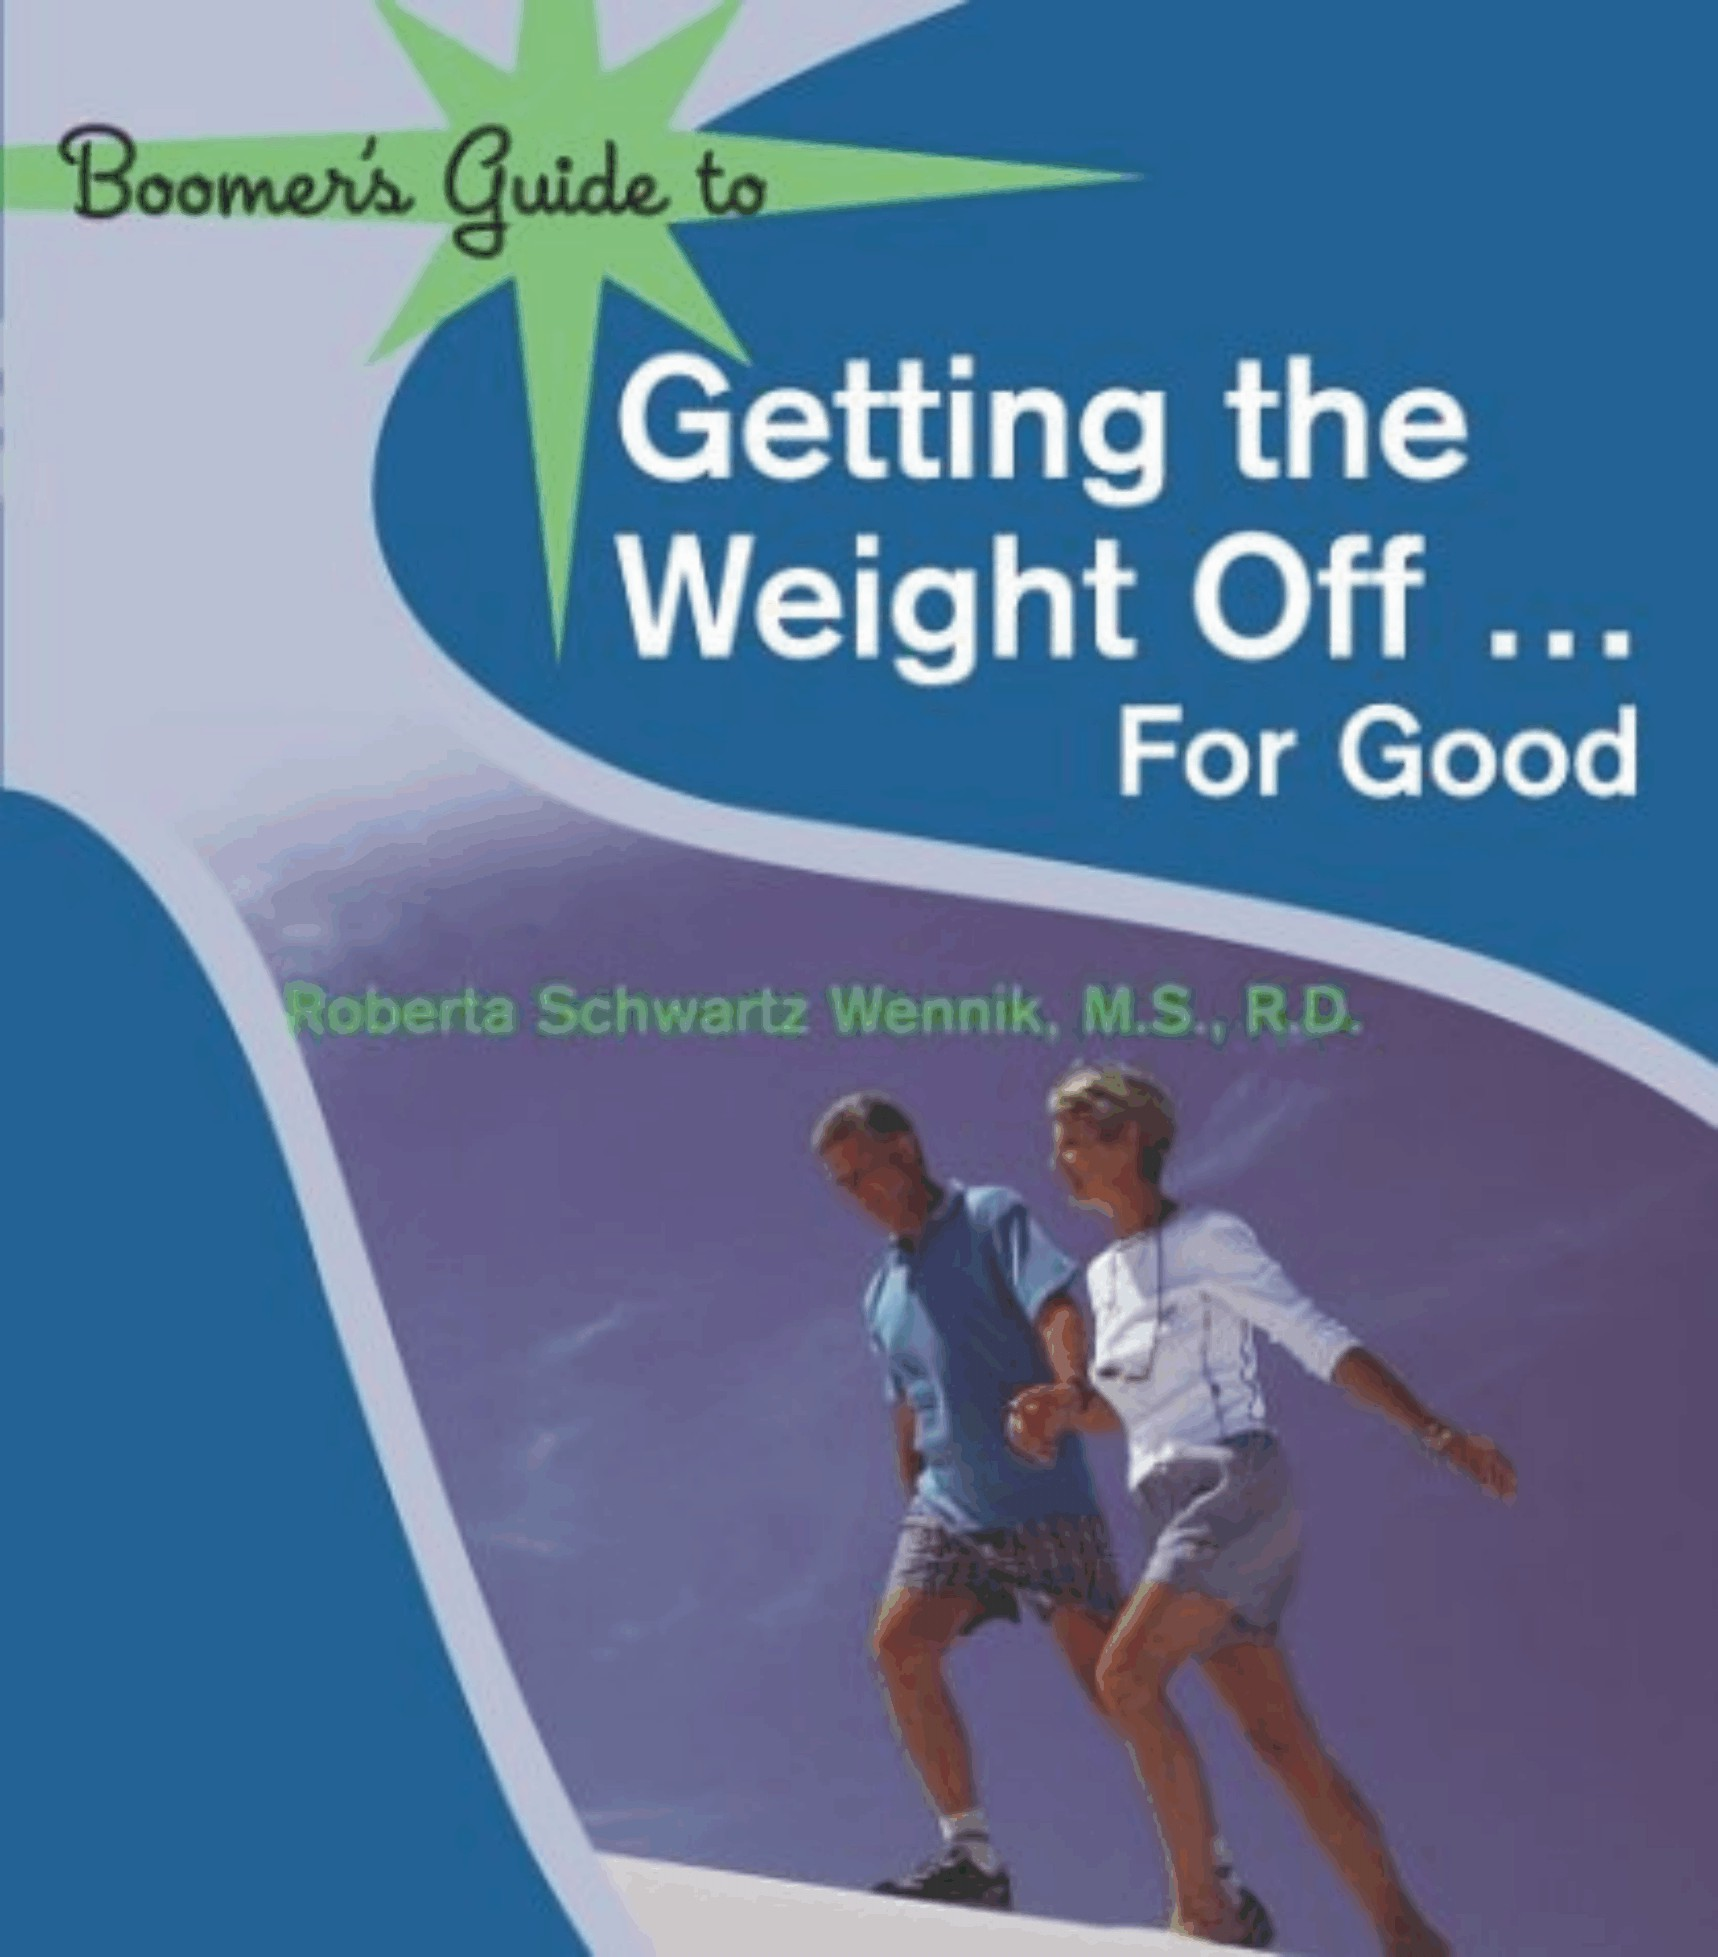 Boomer's Guide to Getting the Weight Off for Good